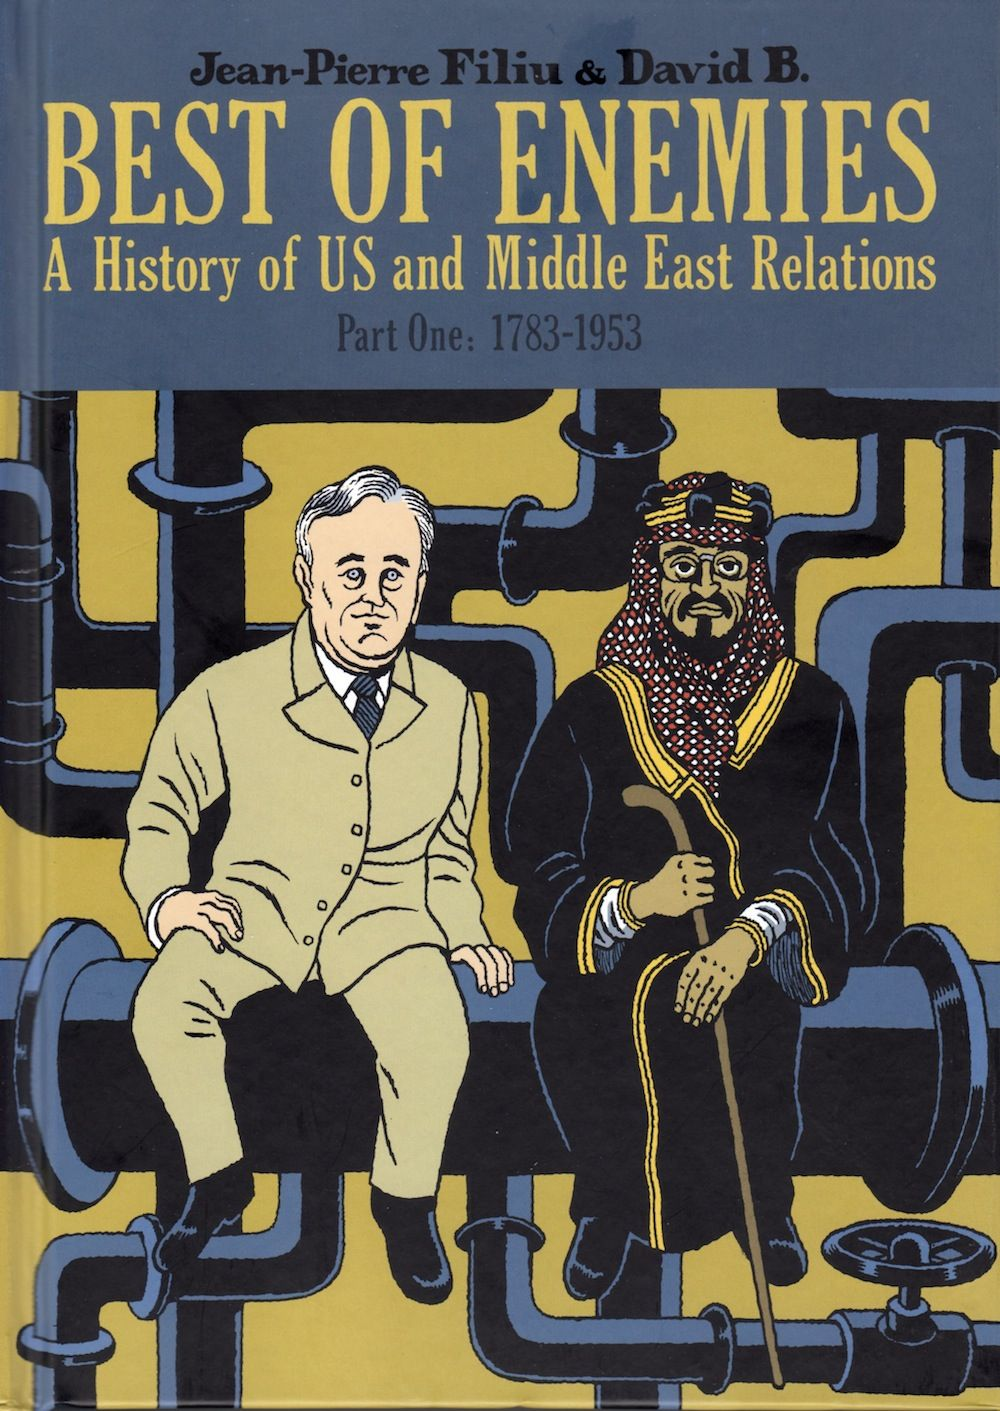 Best of enemies a history of us and middle east relations